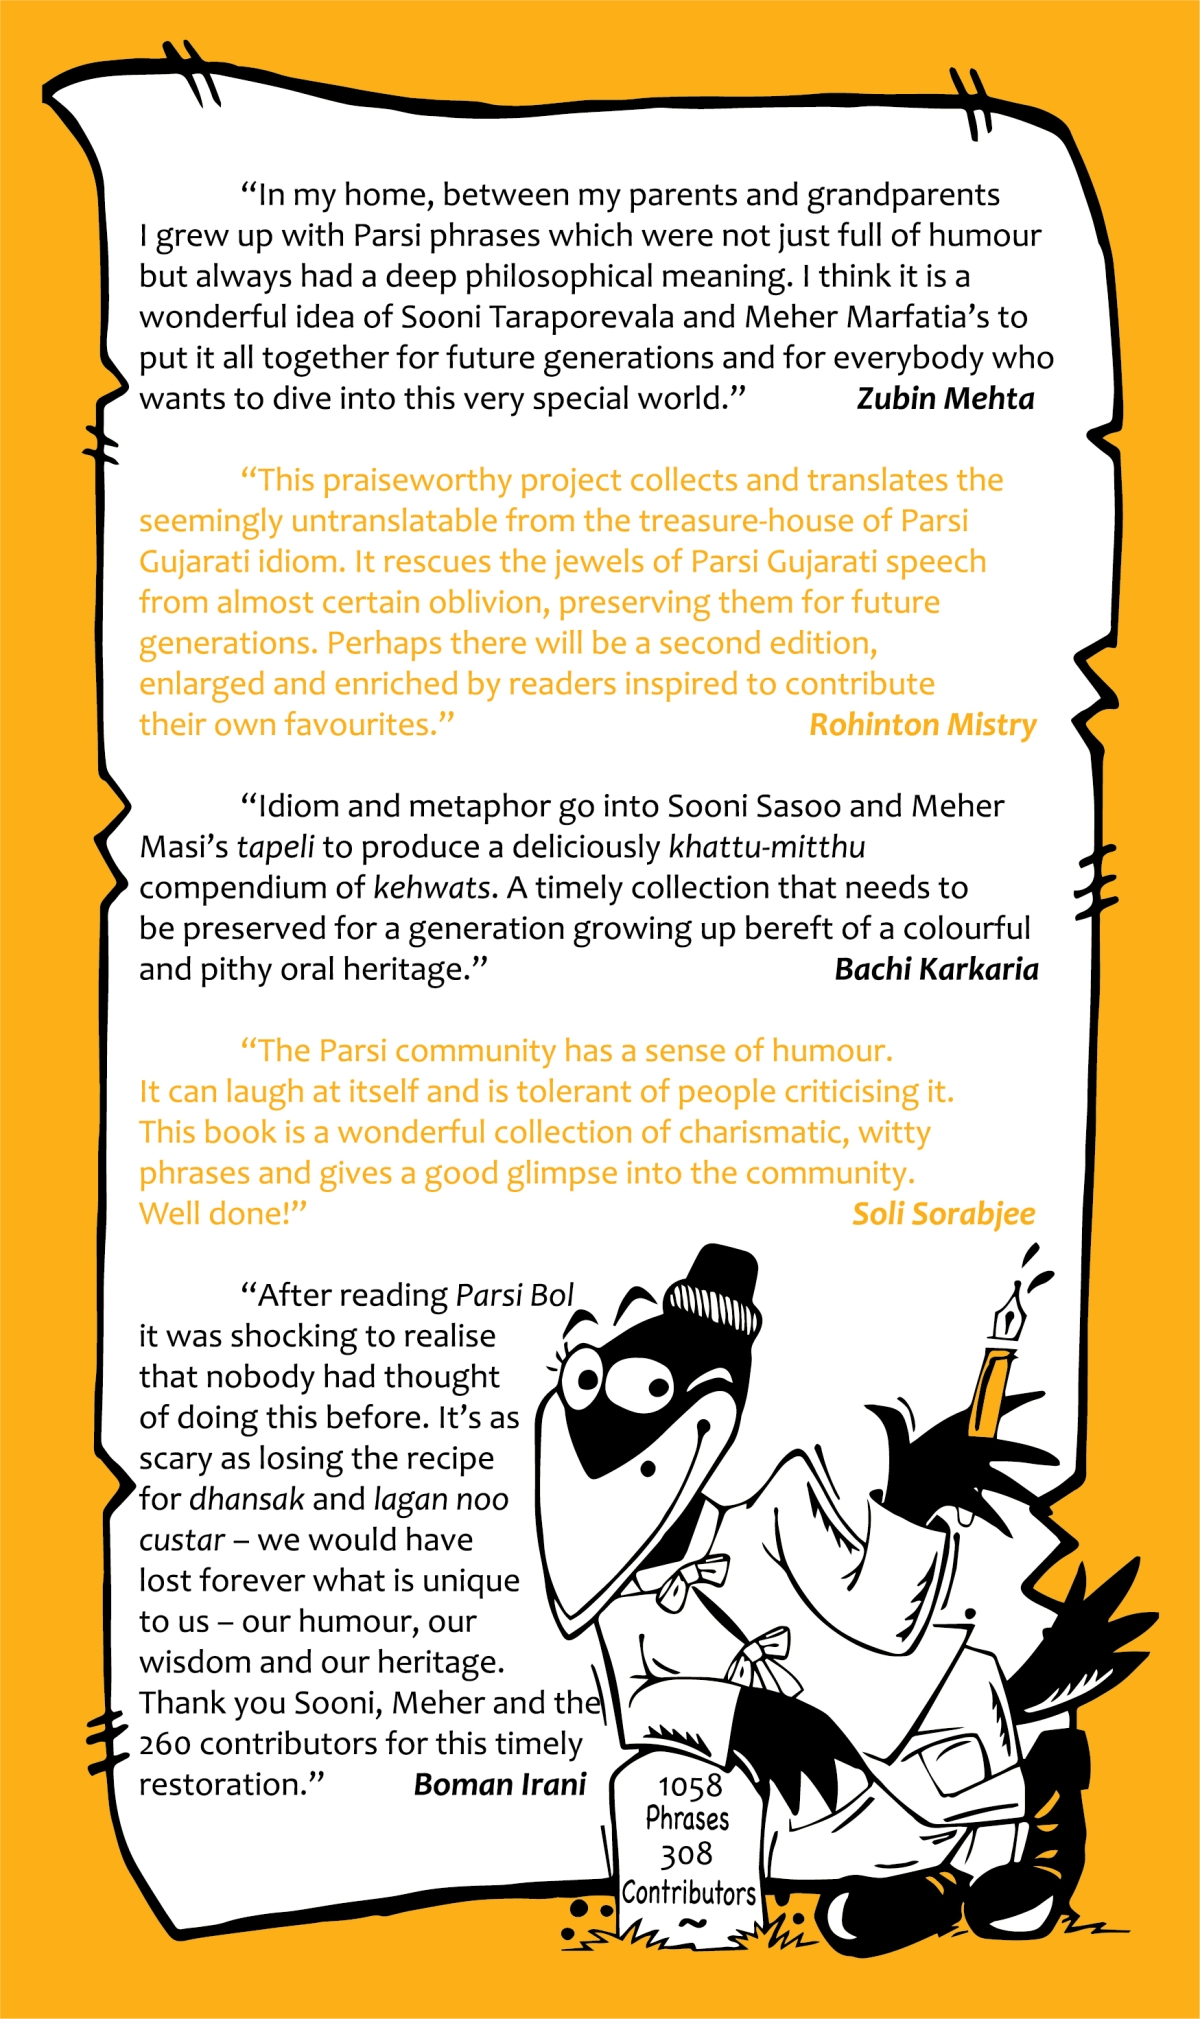 Review: A Wicked Wit Sums Up the Parsis (And This Book About